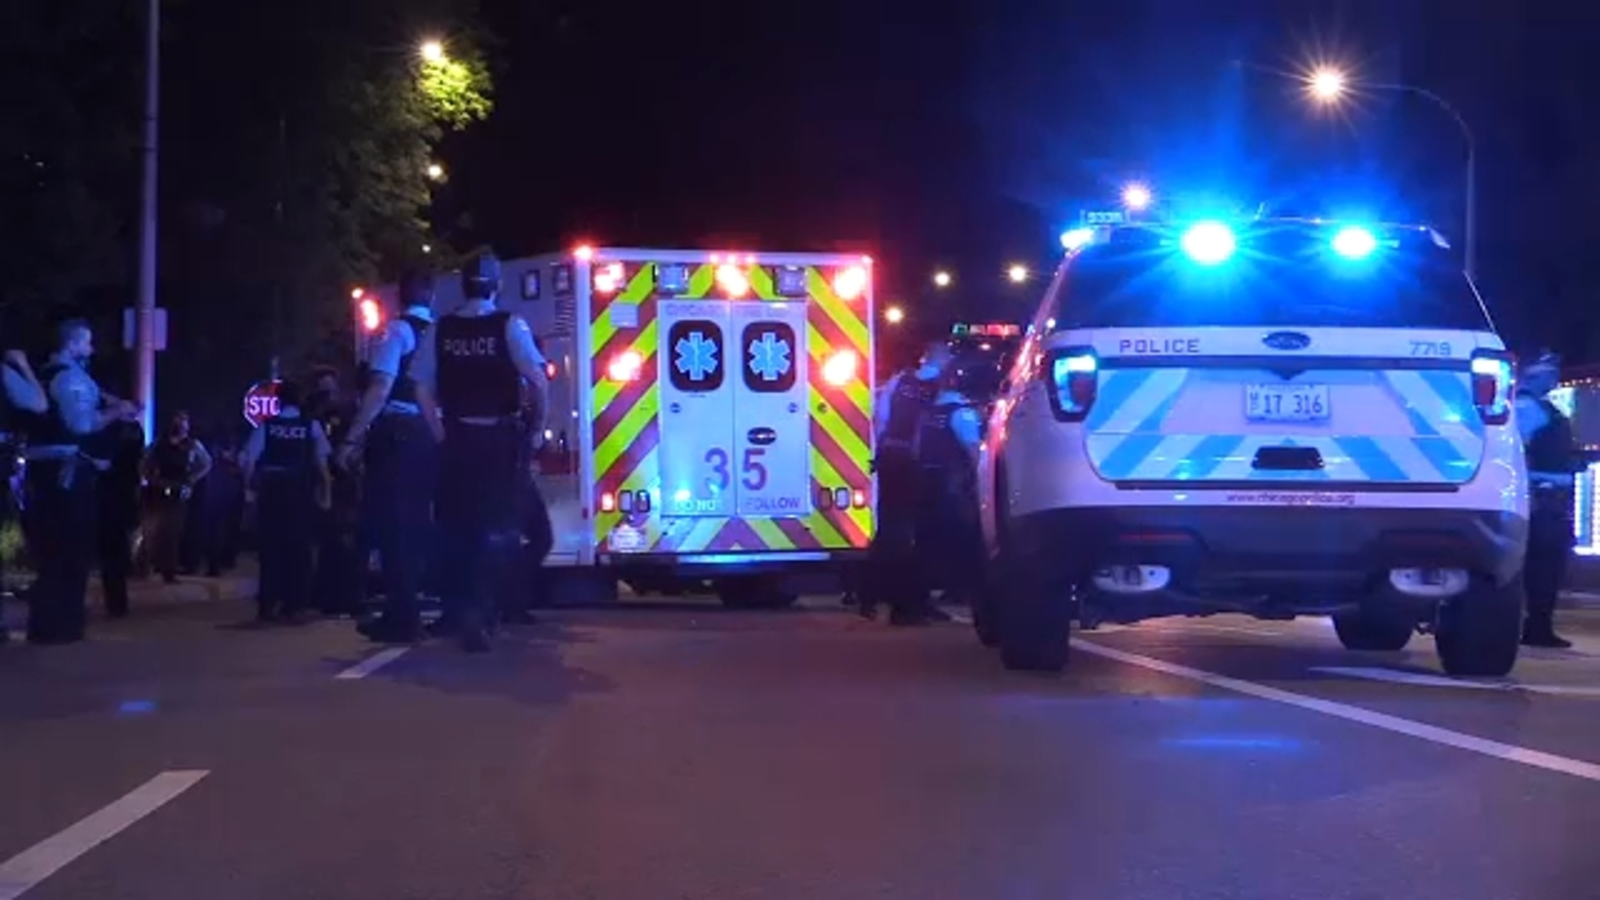 5-year-old girl, 2 teenagers injured in drive-by shooting in Wentworth Gardens on South Side, police say